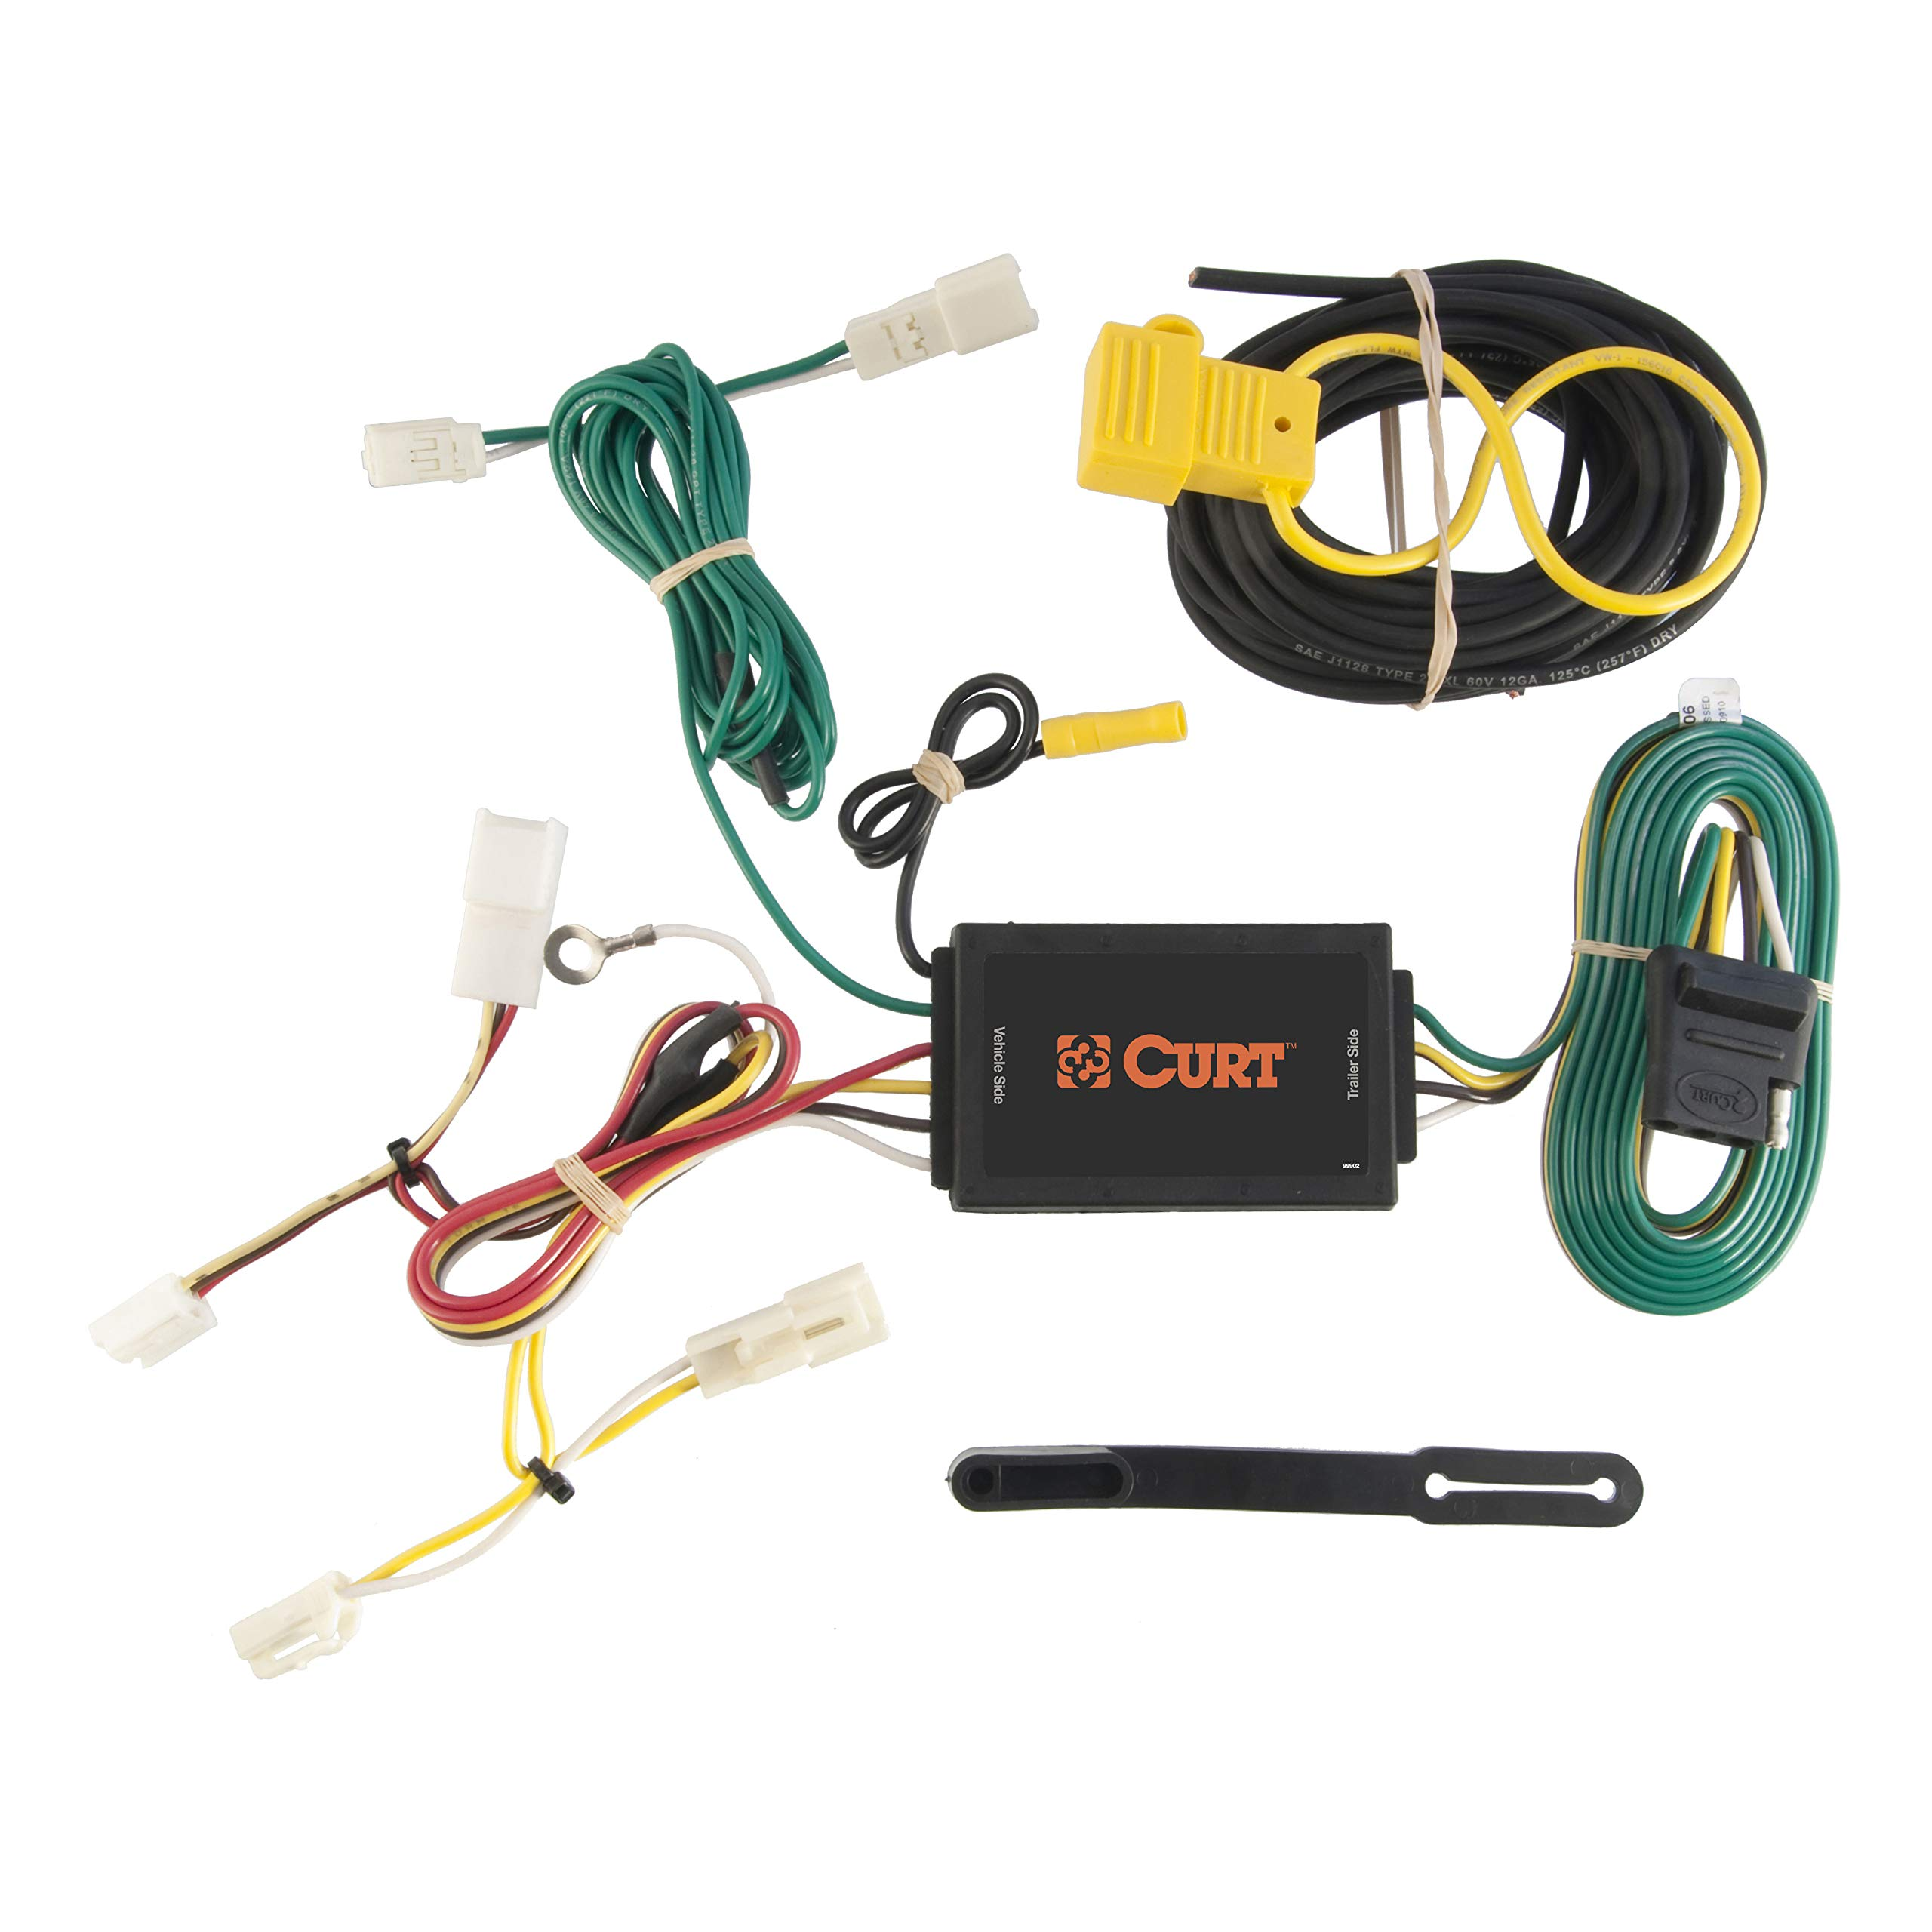 CURT 56106 Vehicle-Side Custom 4-Pin Trailer Wiring Harness for Select Toyota Sienna by CURT